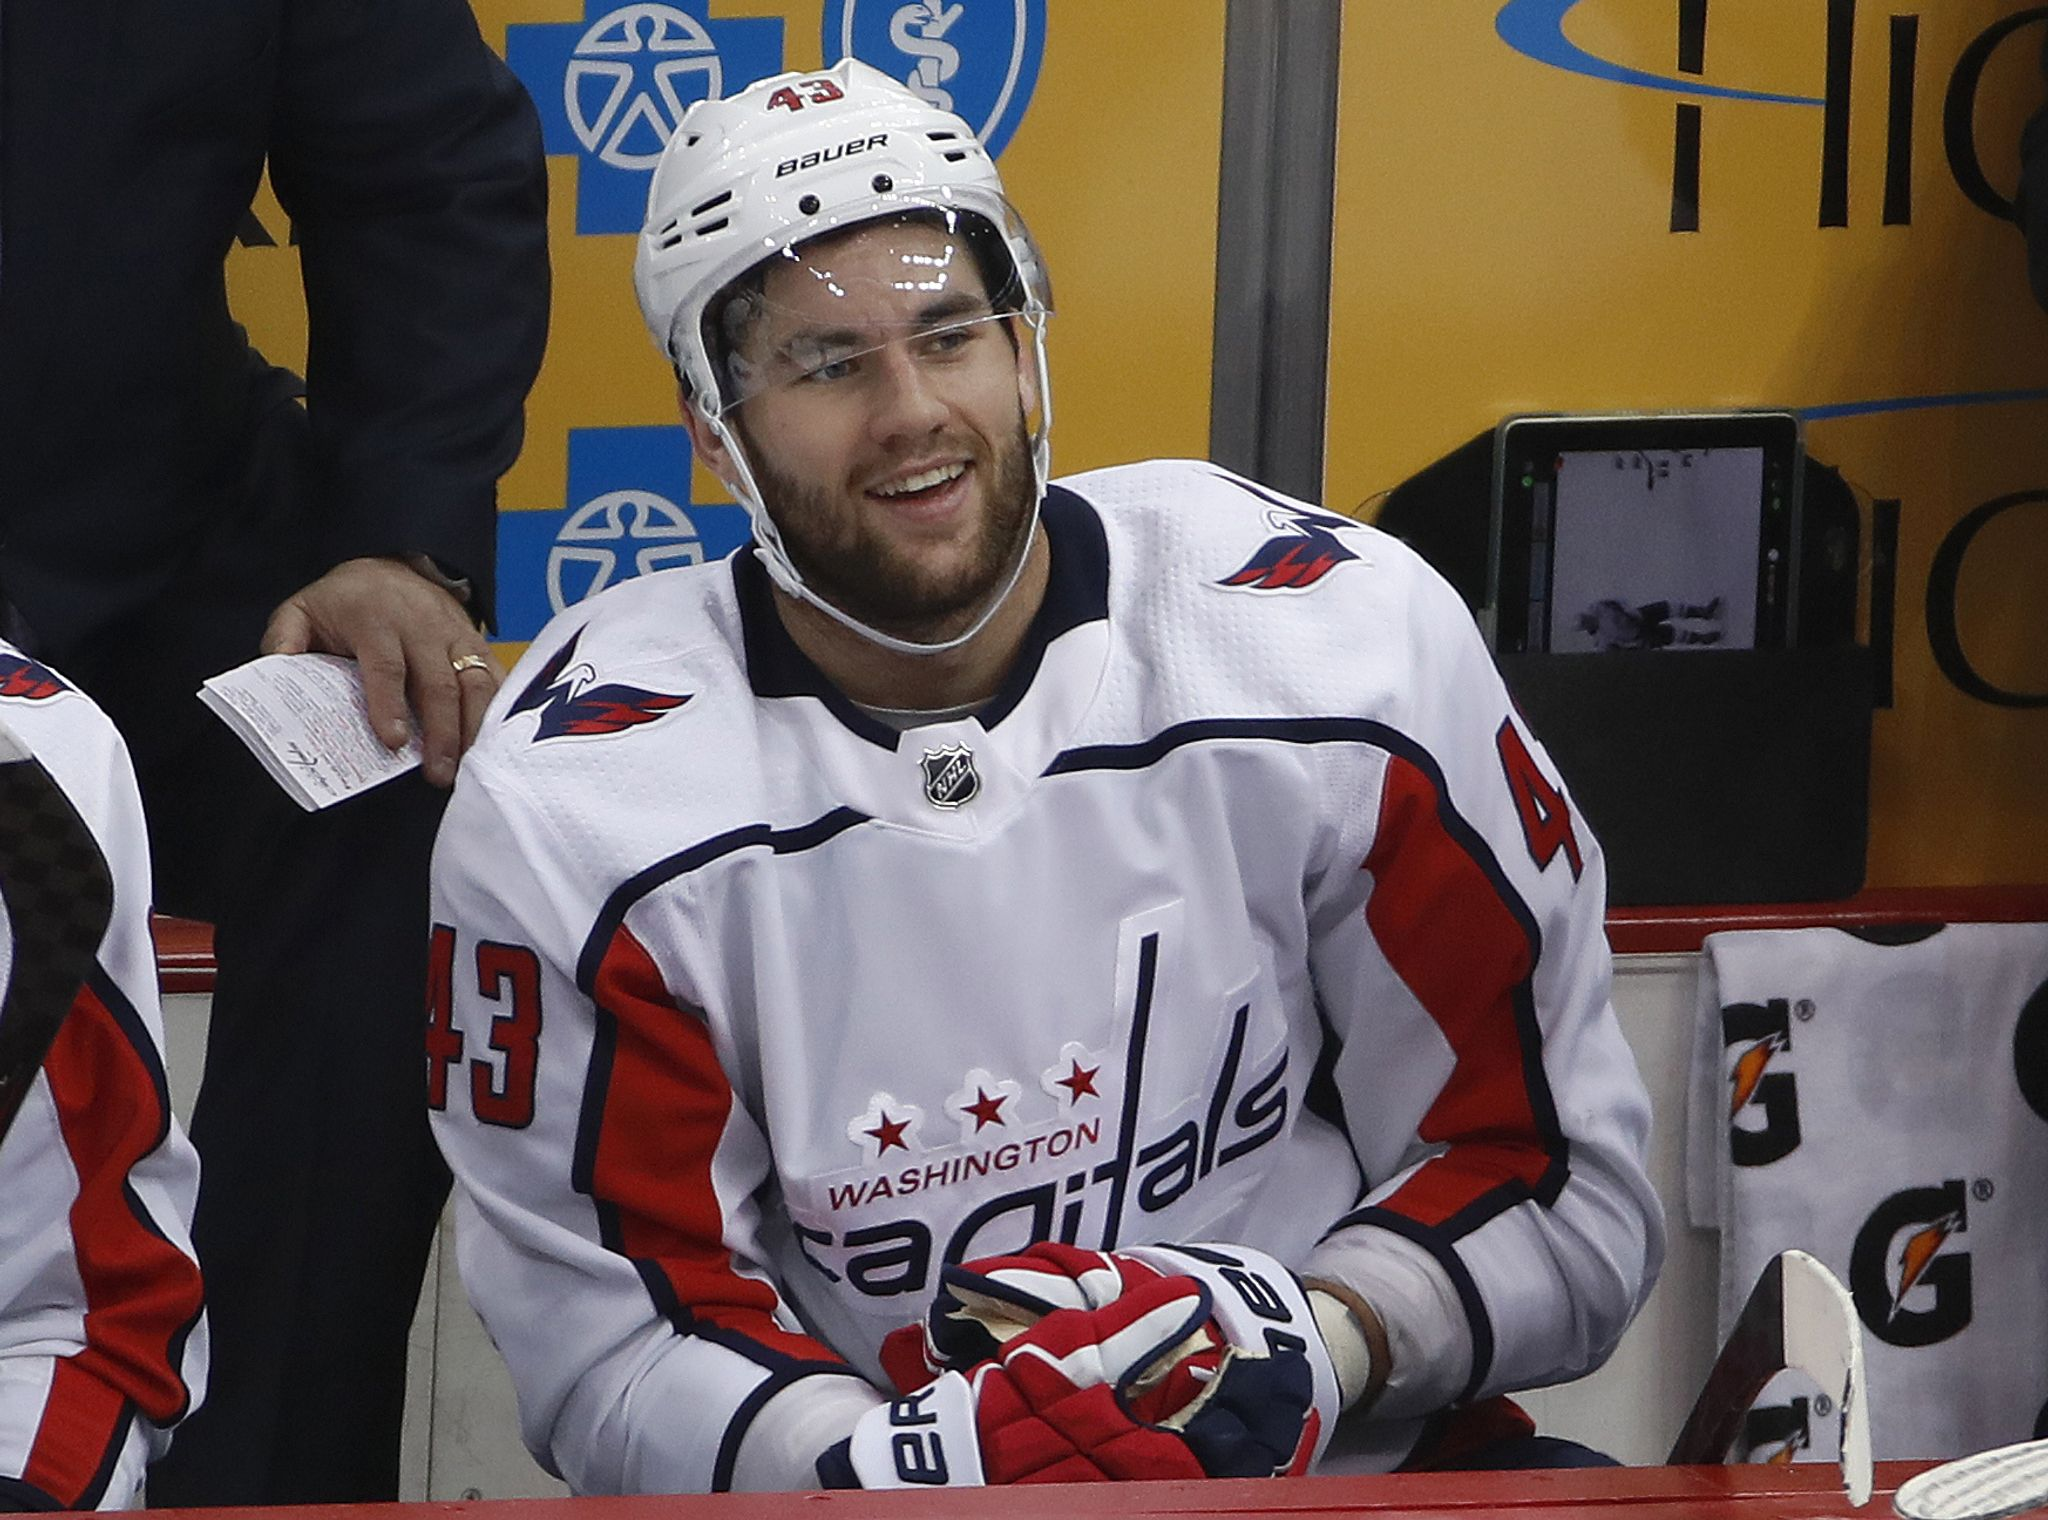 Capitals_penguins_hockey_04111.jpg-b9400_s2048x1520